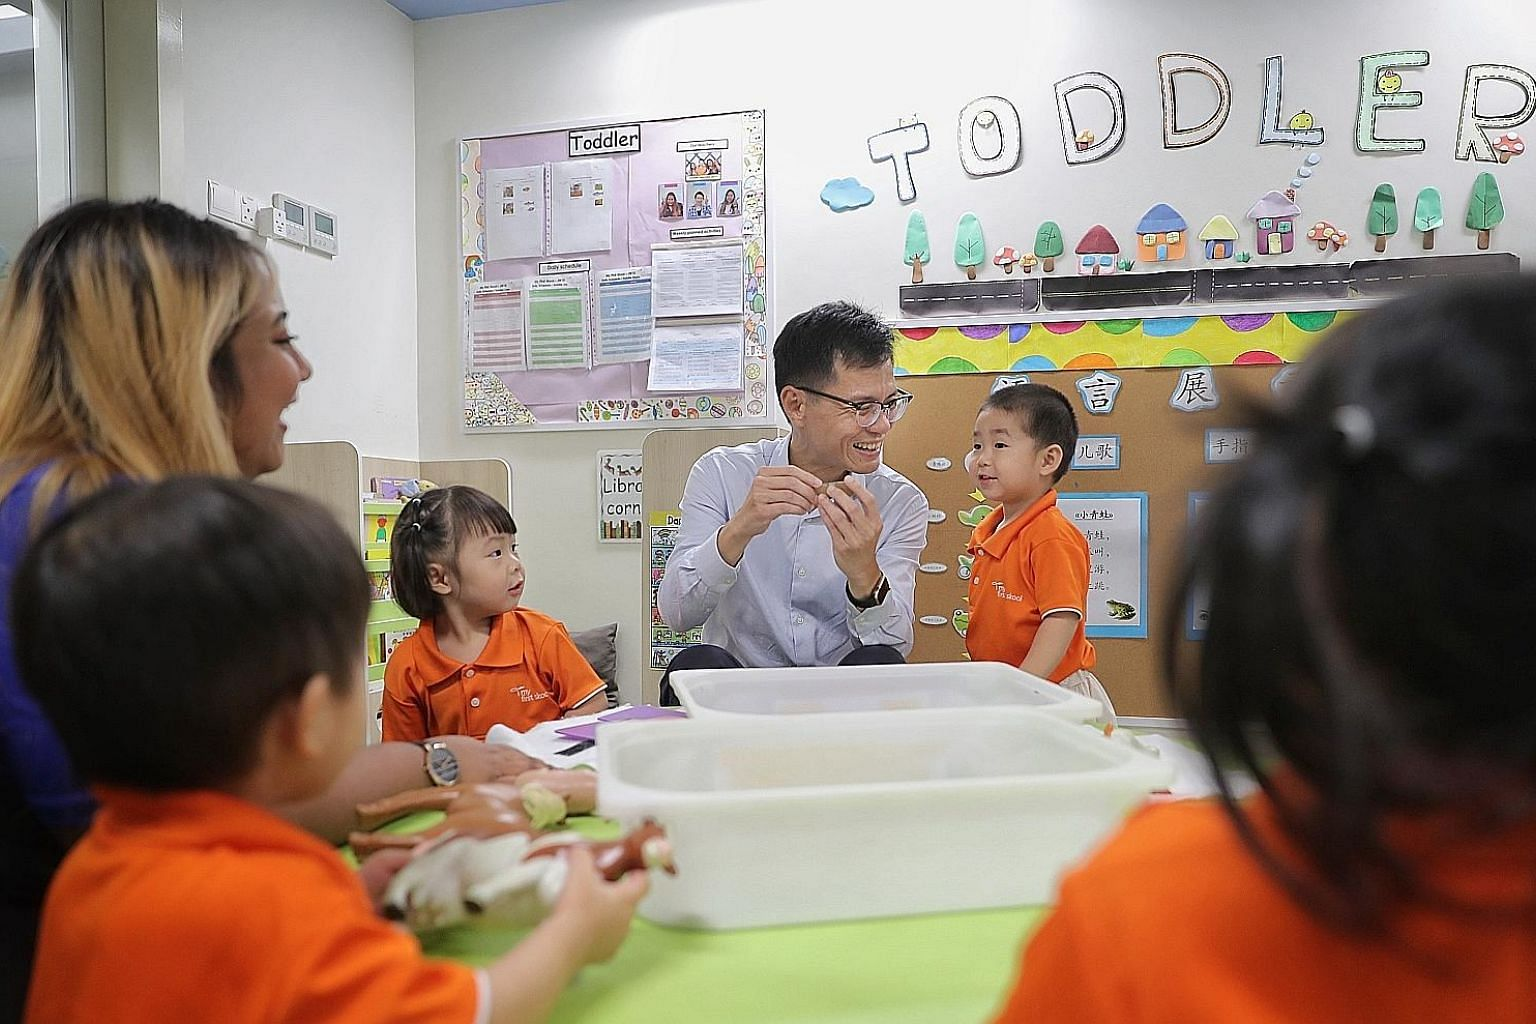 Mr Chan Tee Seng, chief executive of NTUC First Campus, and English teacher Nurul Salhida interacting with toddlers at My First Skool in Jurong West last month. NTUC First Campus, which runs My First Skool, will be spending $3 million in the next thr